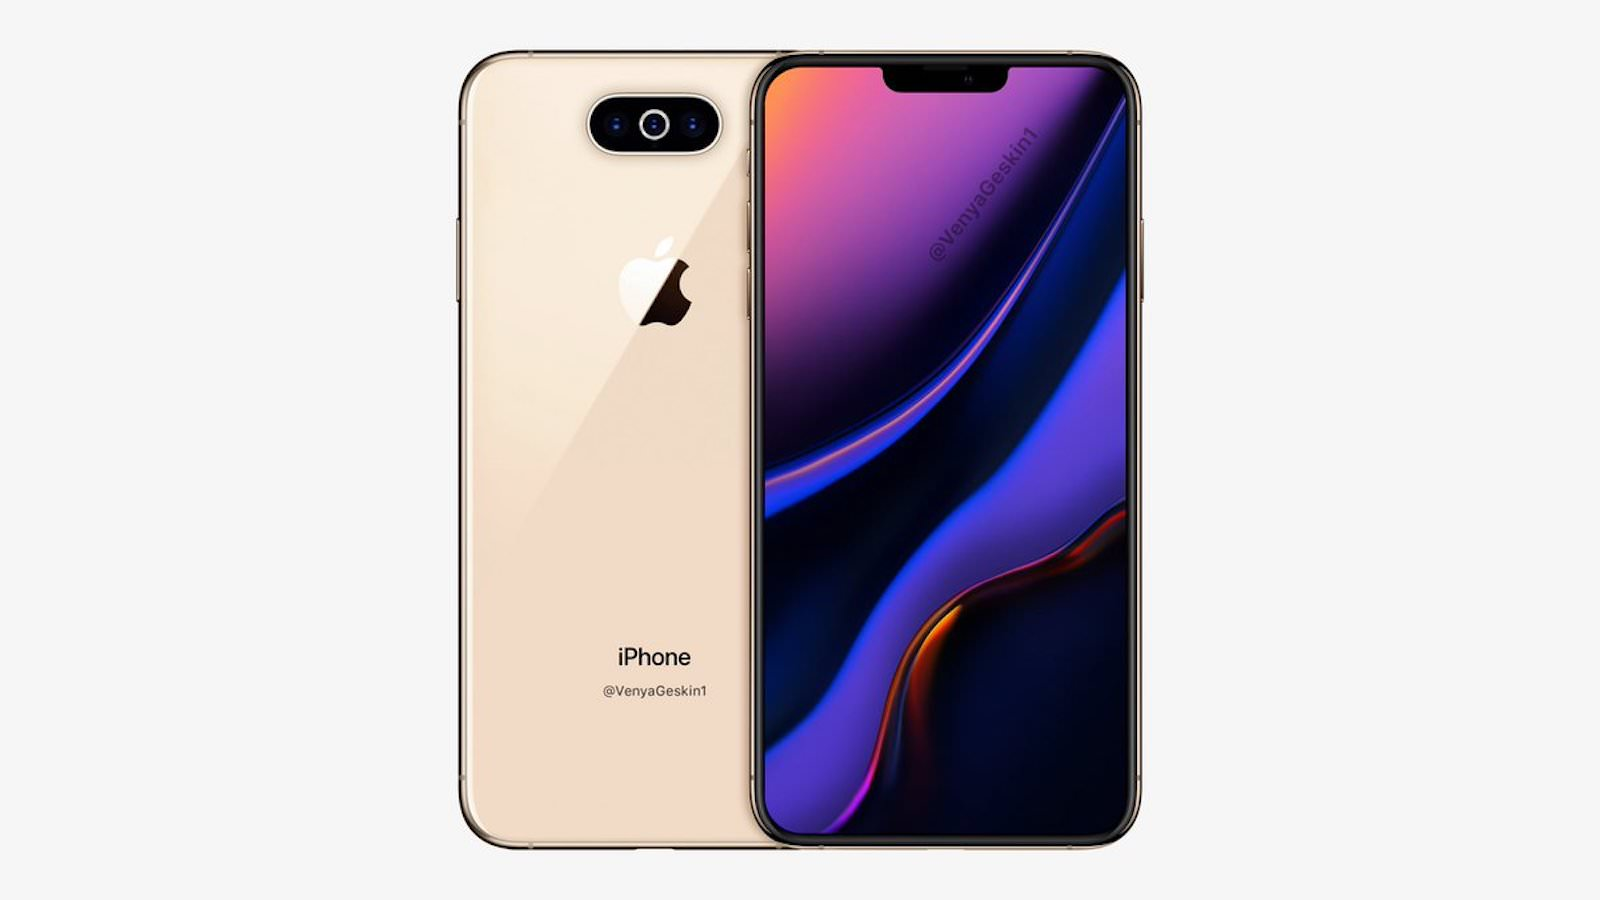 Next 2019 iphone model image